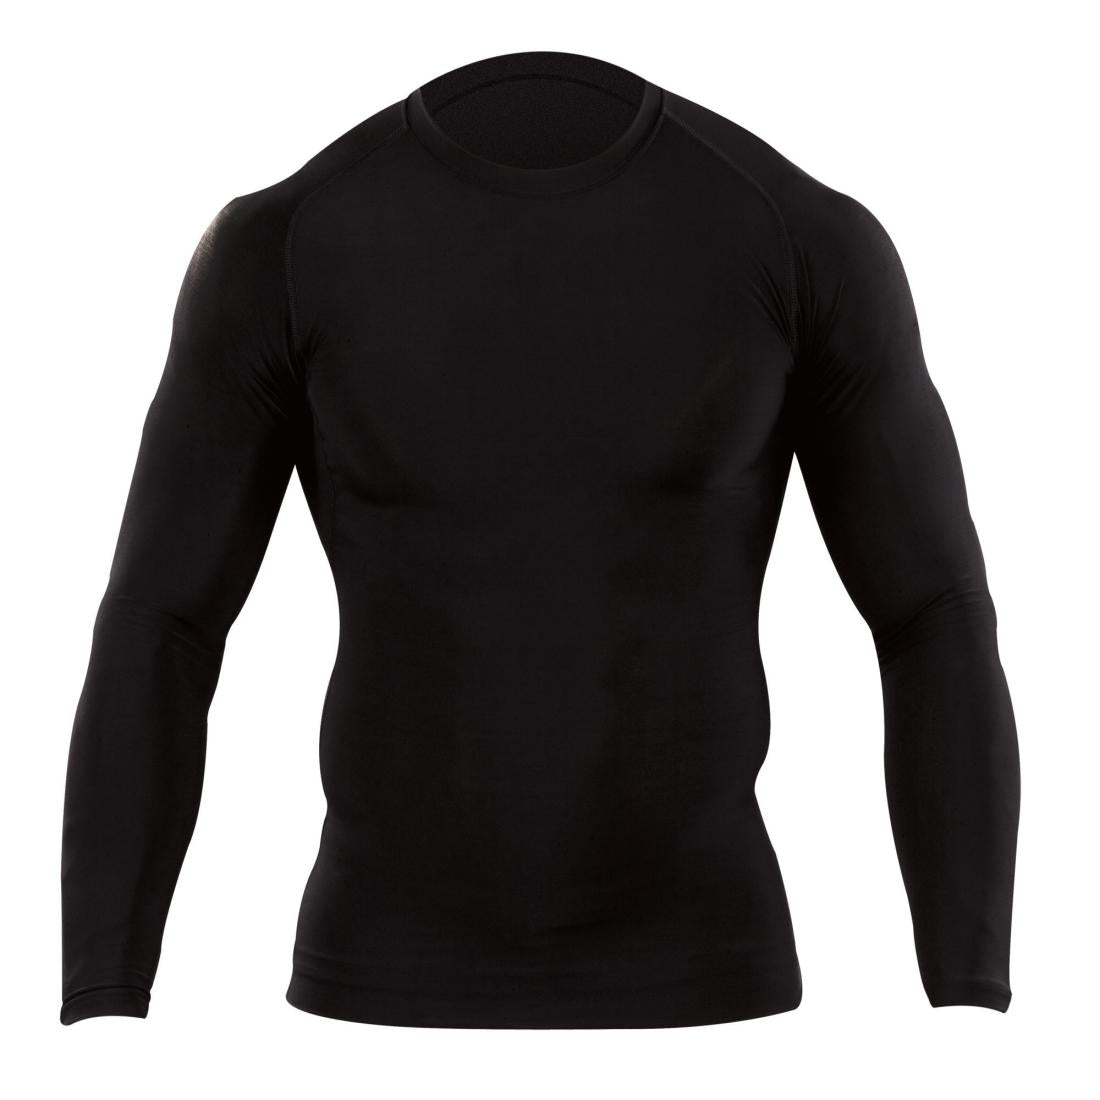 5.11 Tactical 40006 Men Tight Crew Shirt - Long Sleeve Black